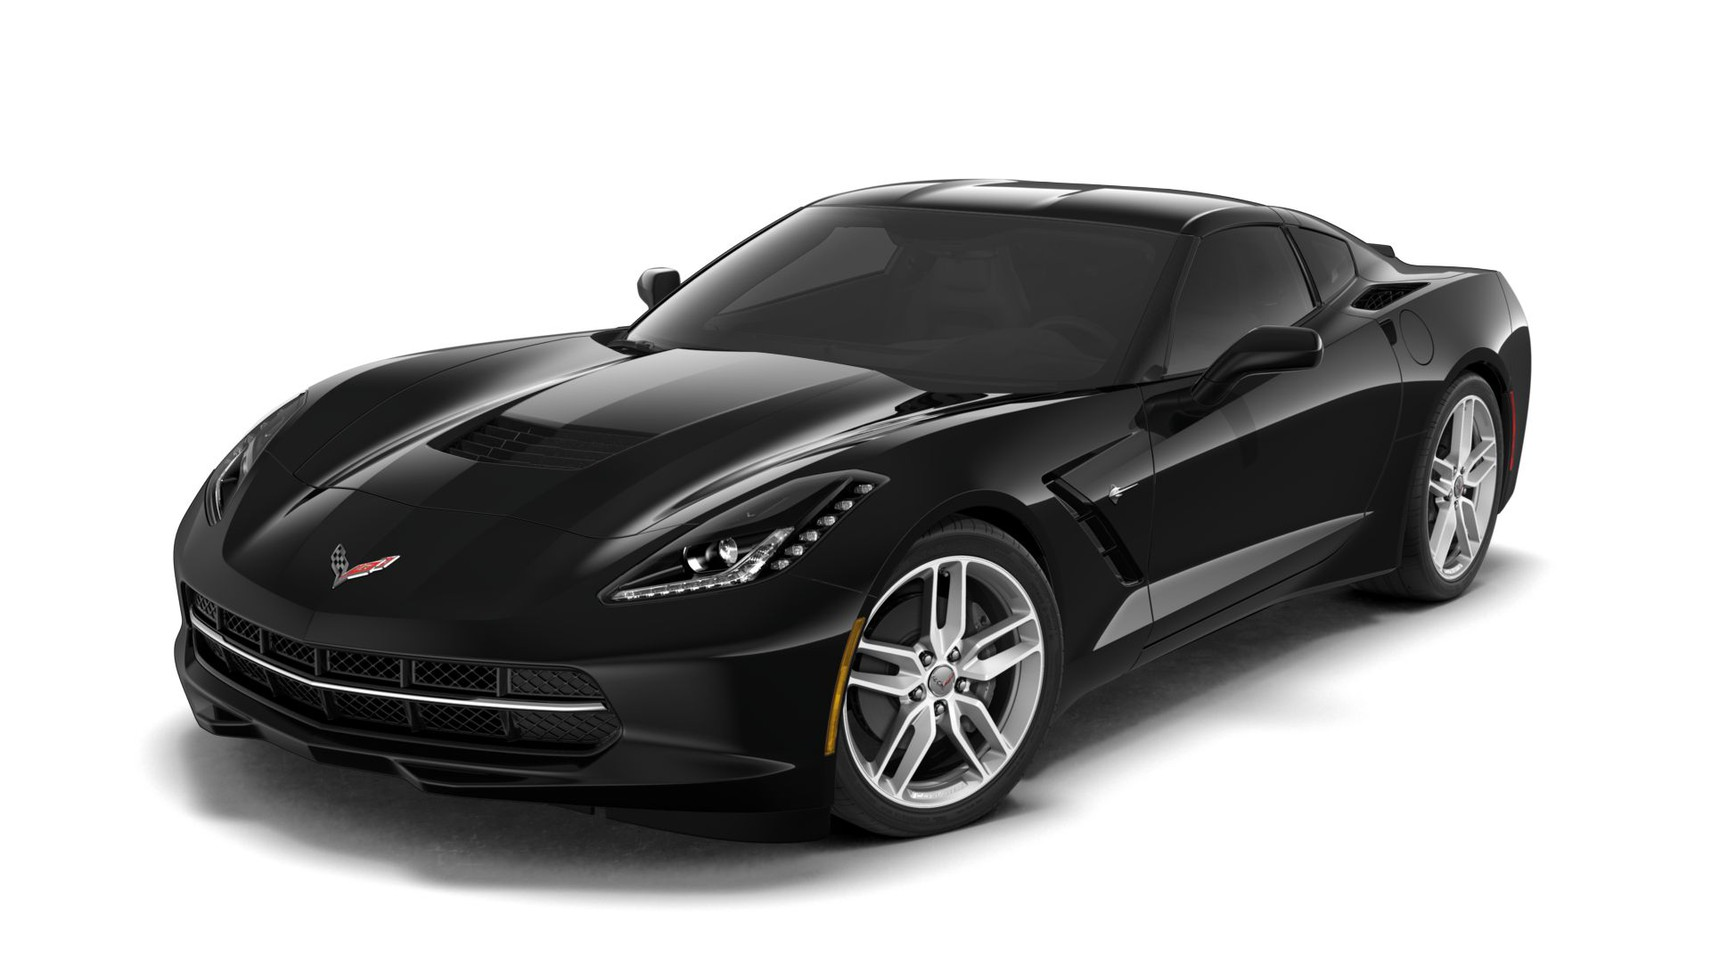 Chevrolet Corvette Stingray 2019 3LT Coupe 6.2 V8 DI Бензин 7 ст. МКПП Задний